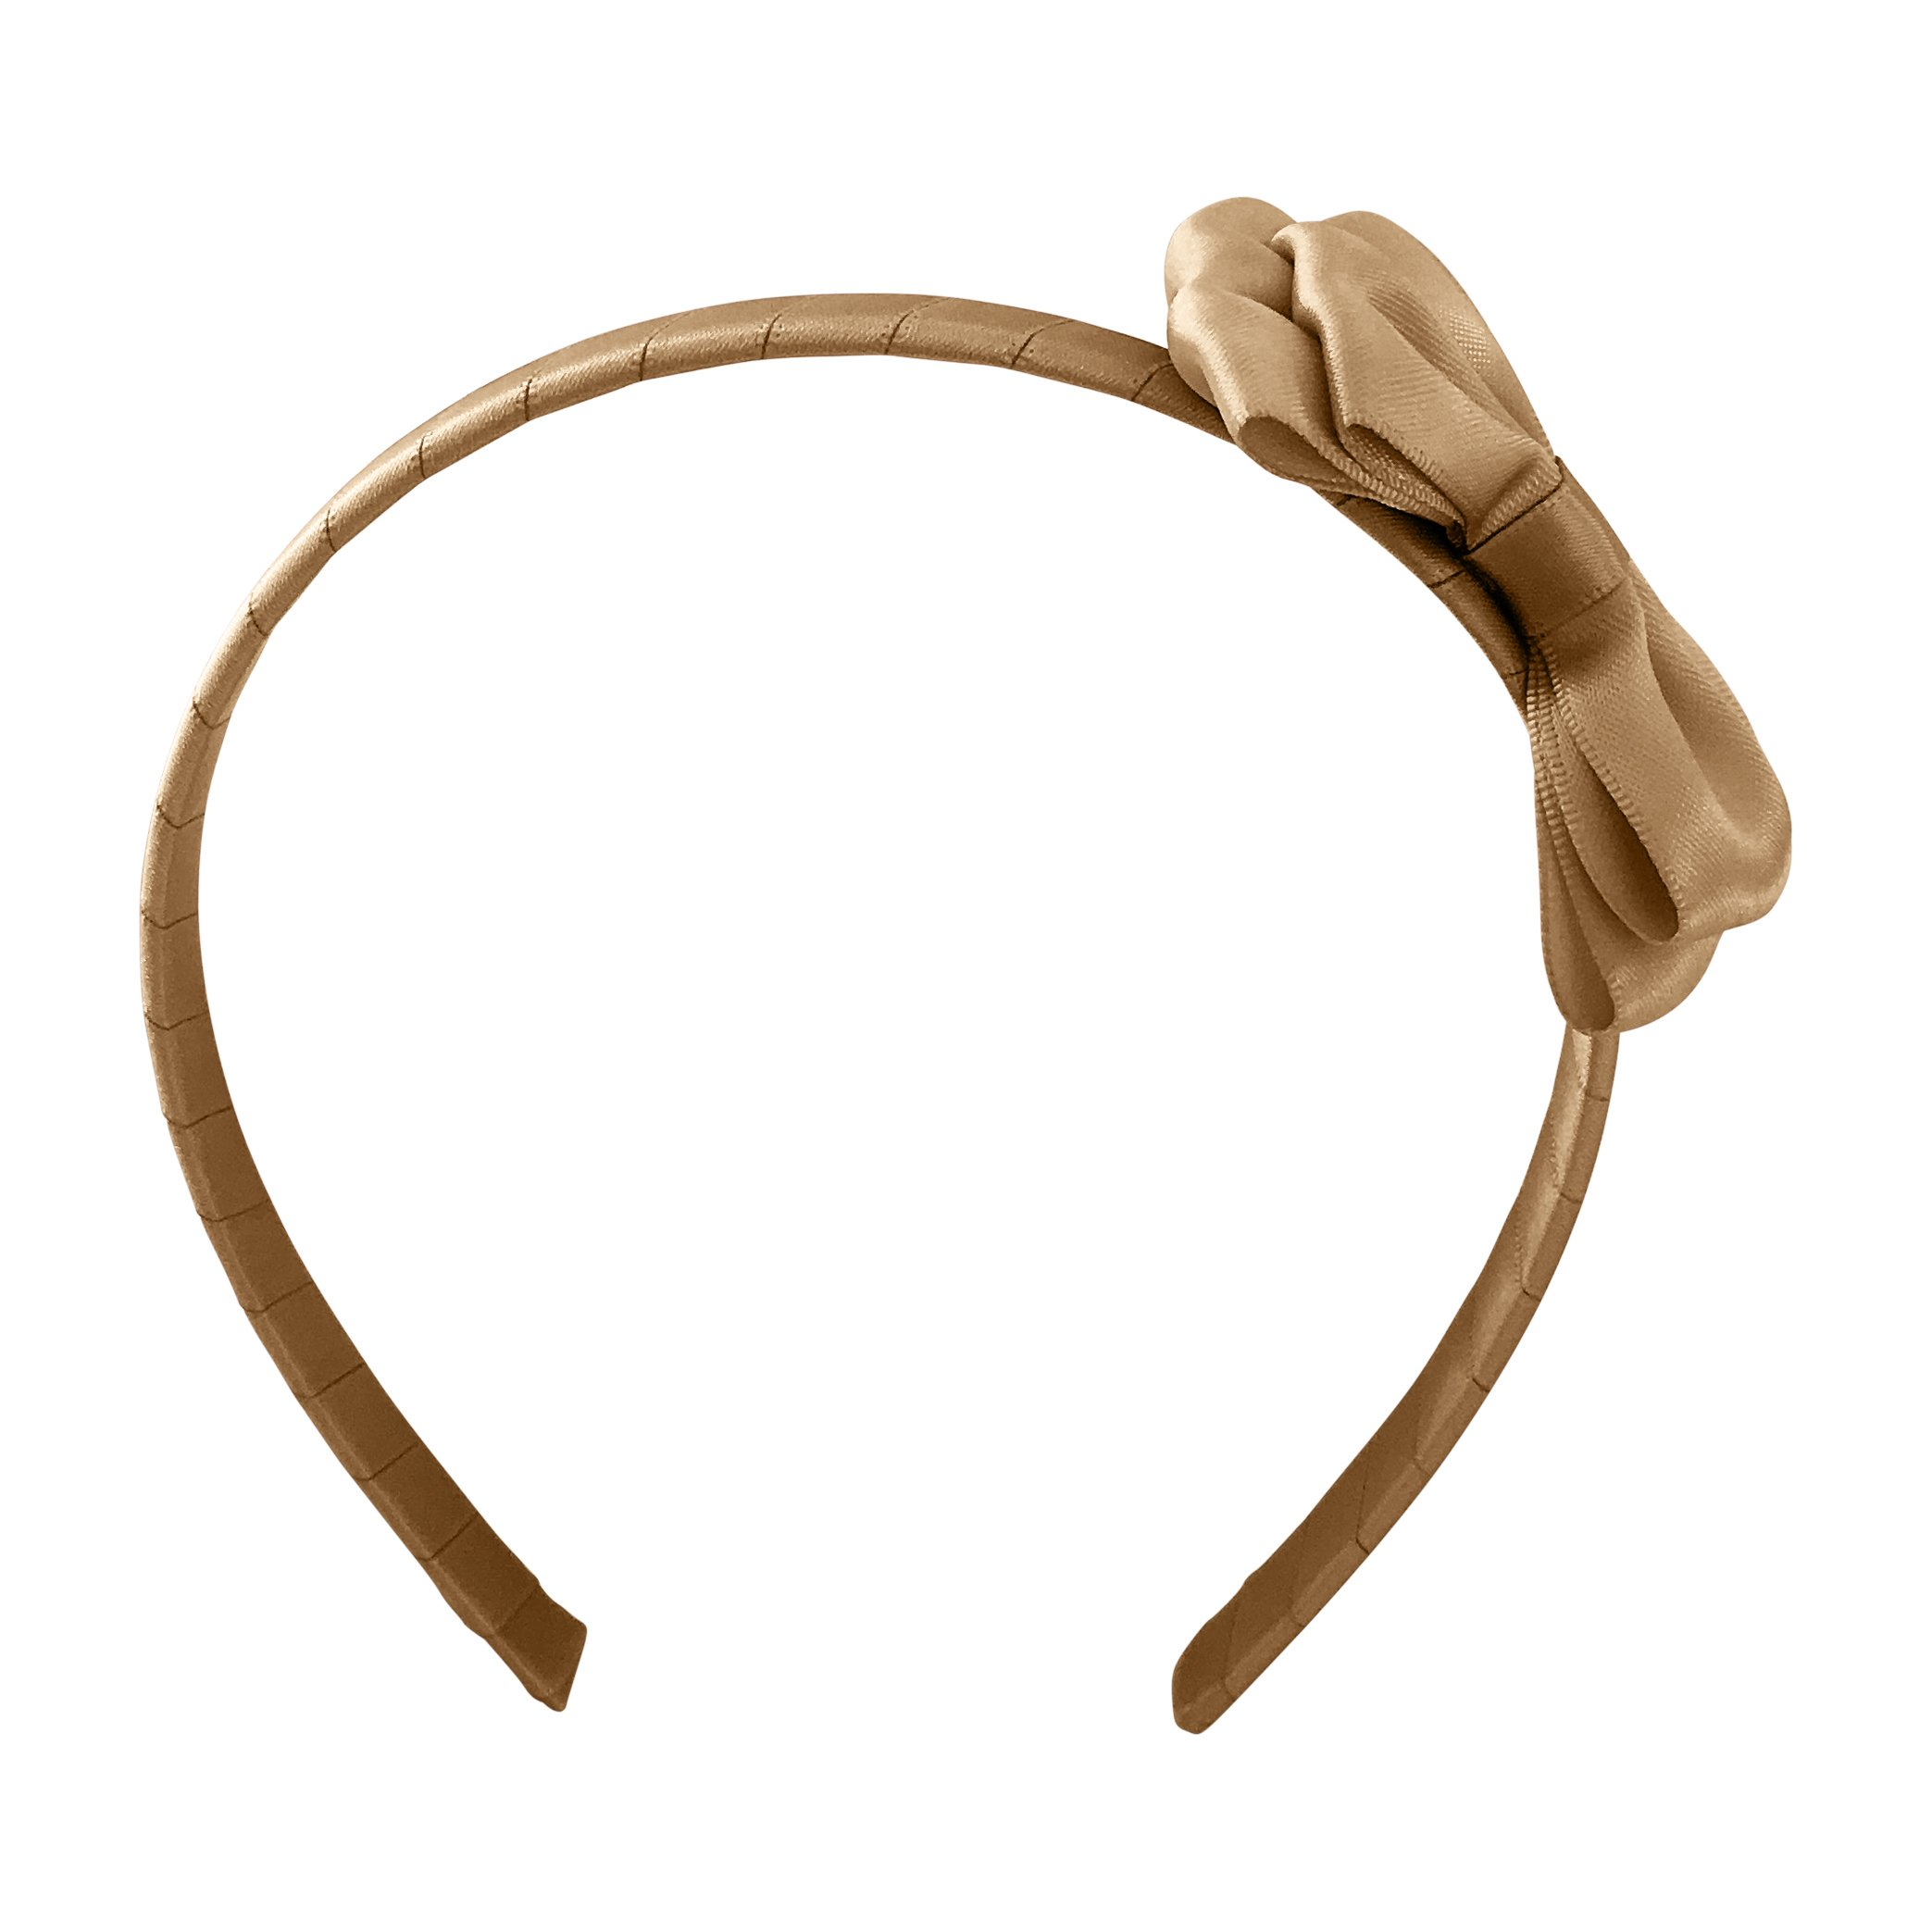 Medium double bowtie - hairband - Pale Gold